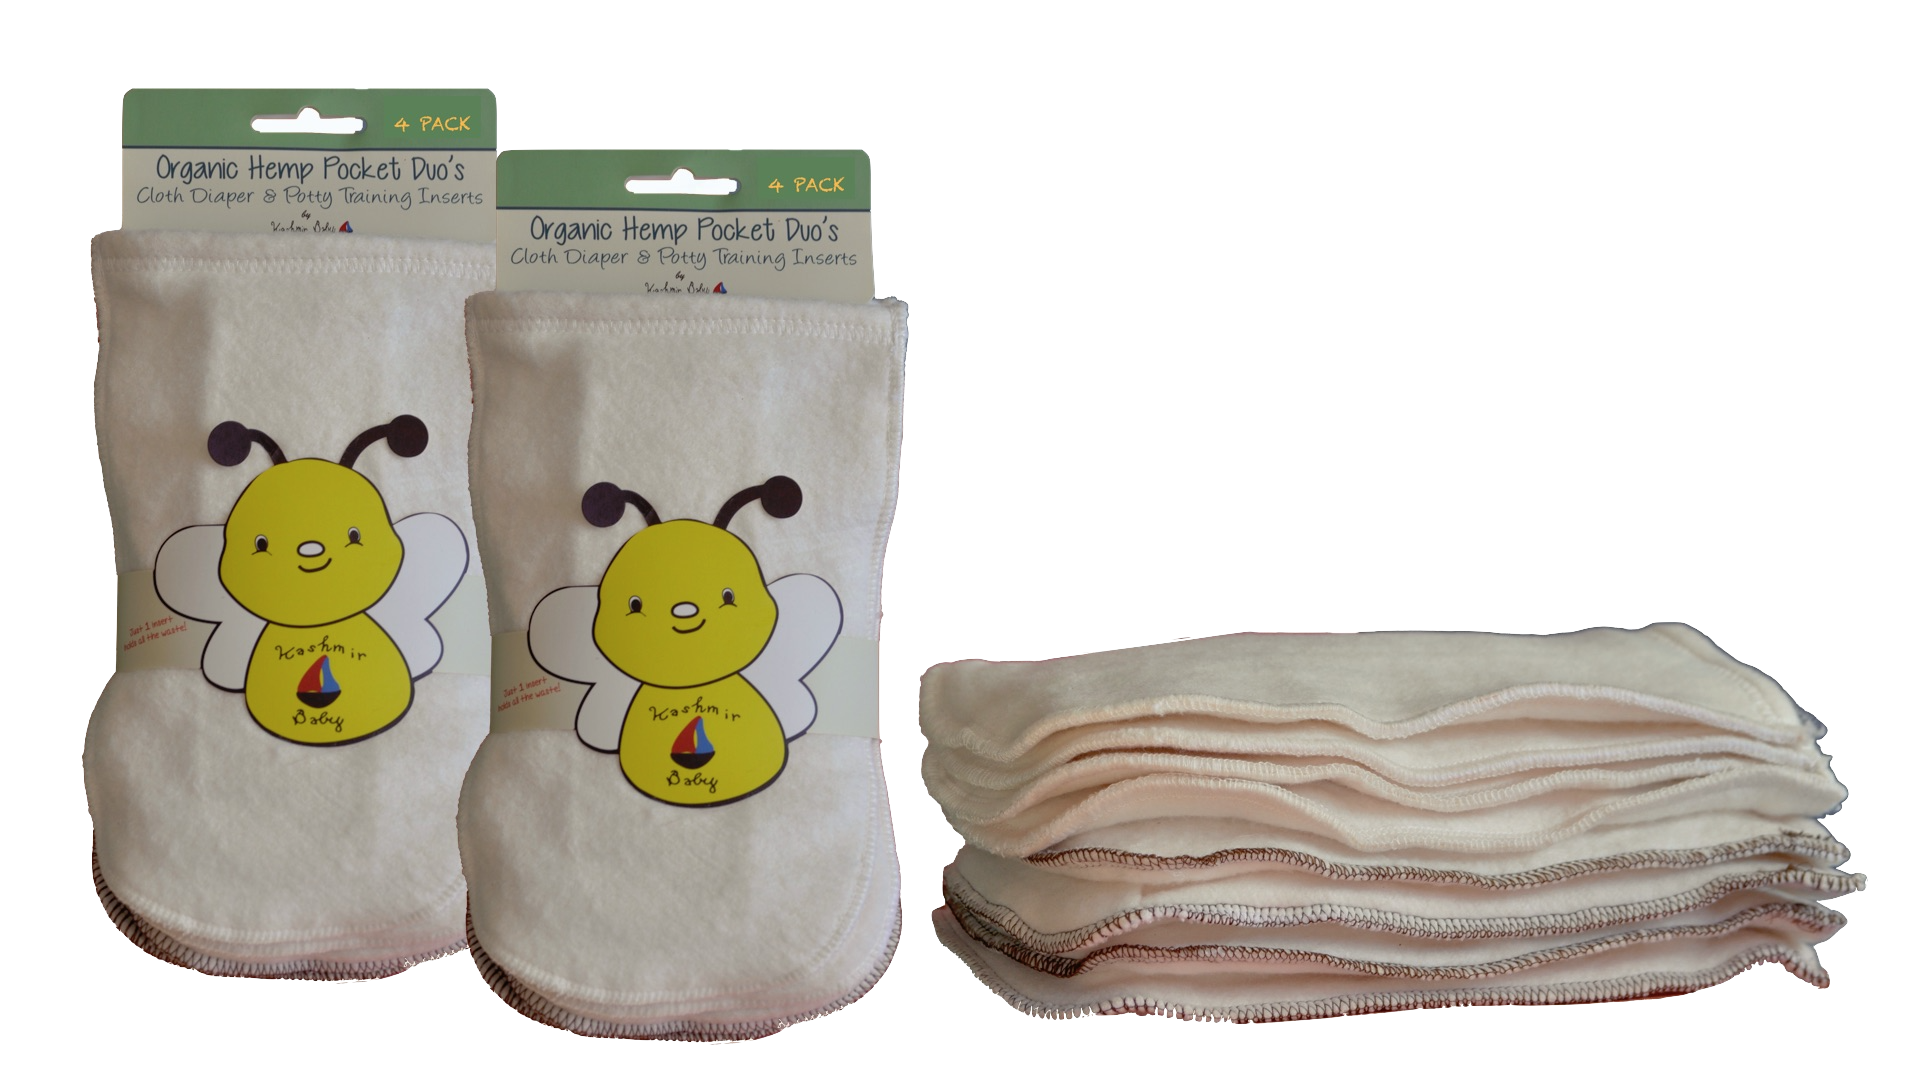 Hemp/Organic Cotton Pocket Duo Cloth Diaper & Potty-Training Inserts- 8 Pack: 4 Size Small/4 Size Large